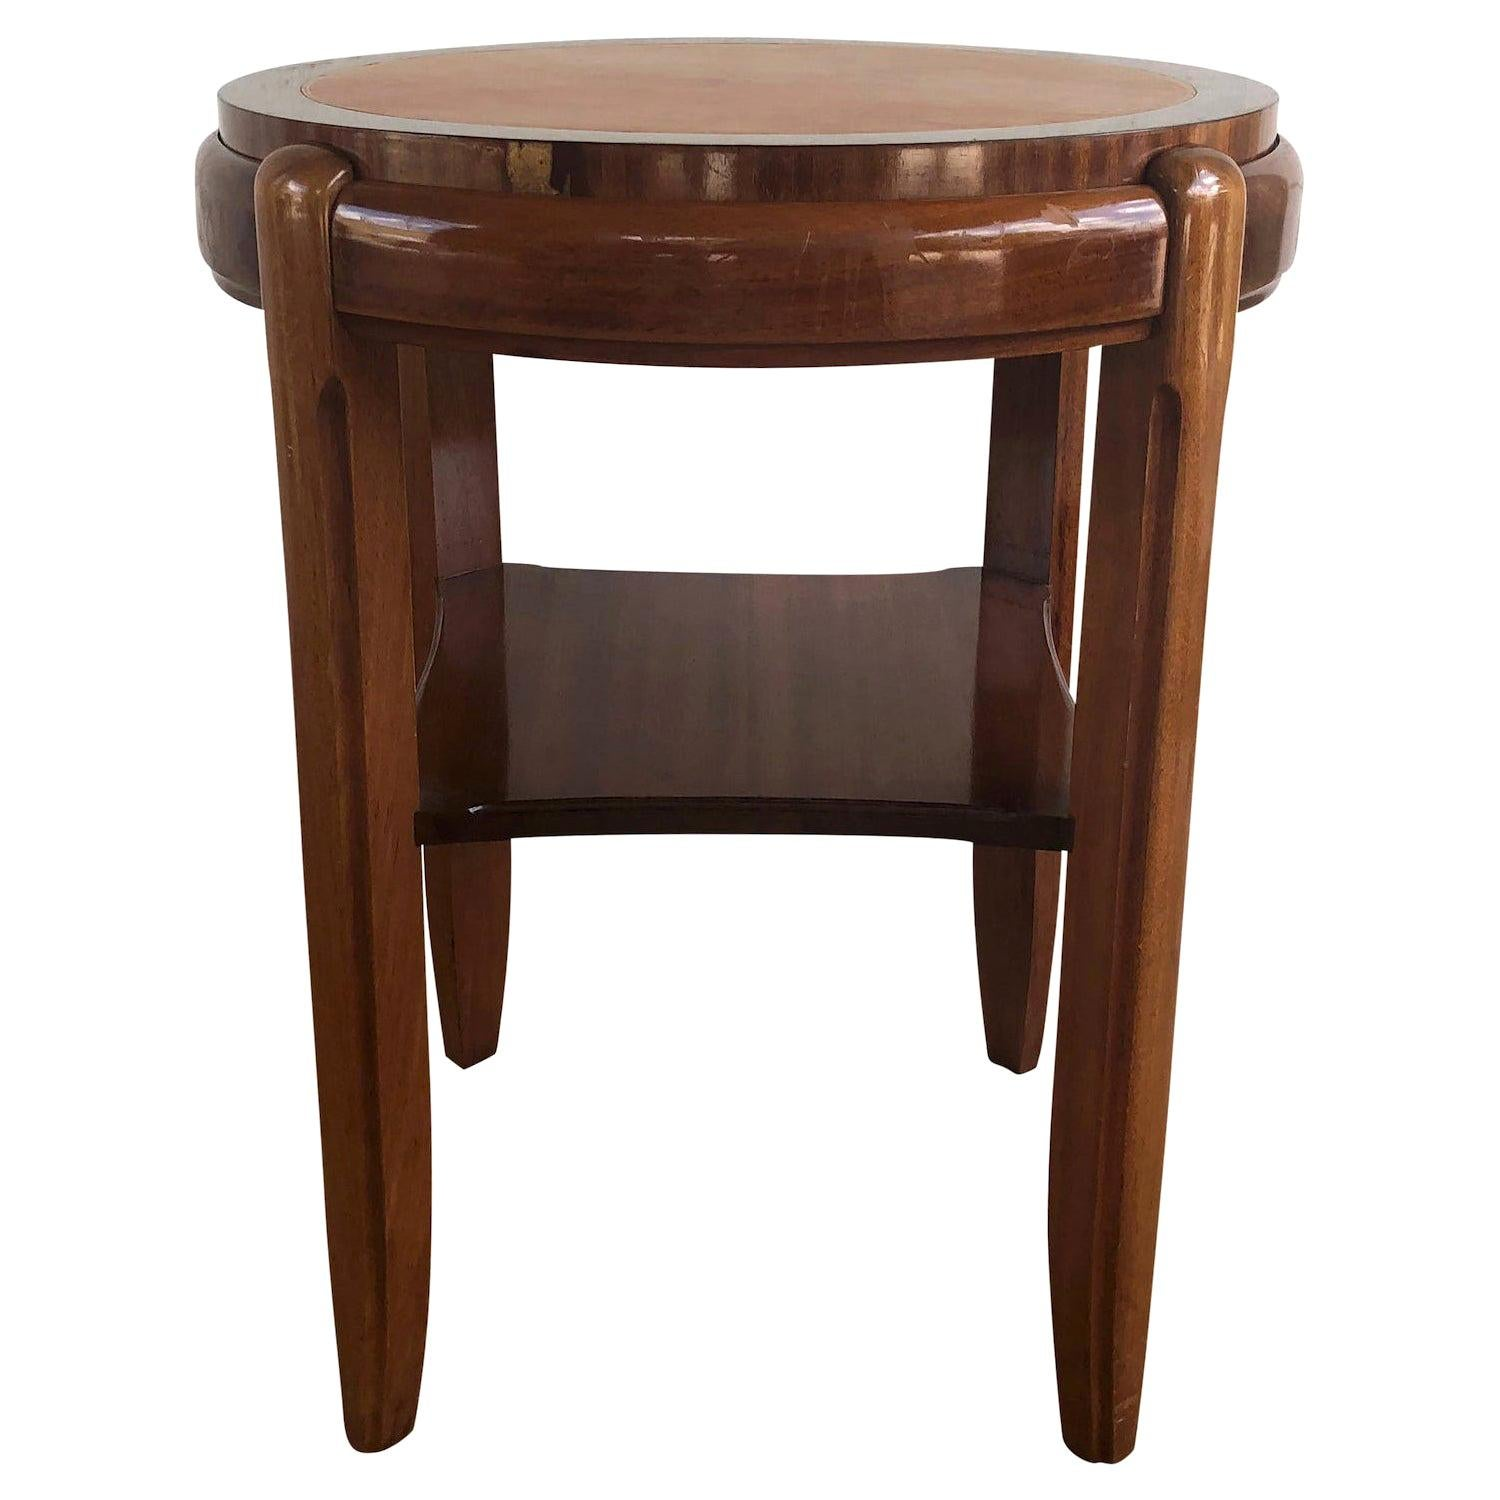 20th Century Brown Occasional Round Art Deco Side Table, Small Italian End Table